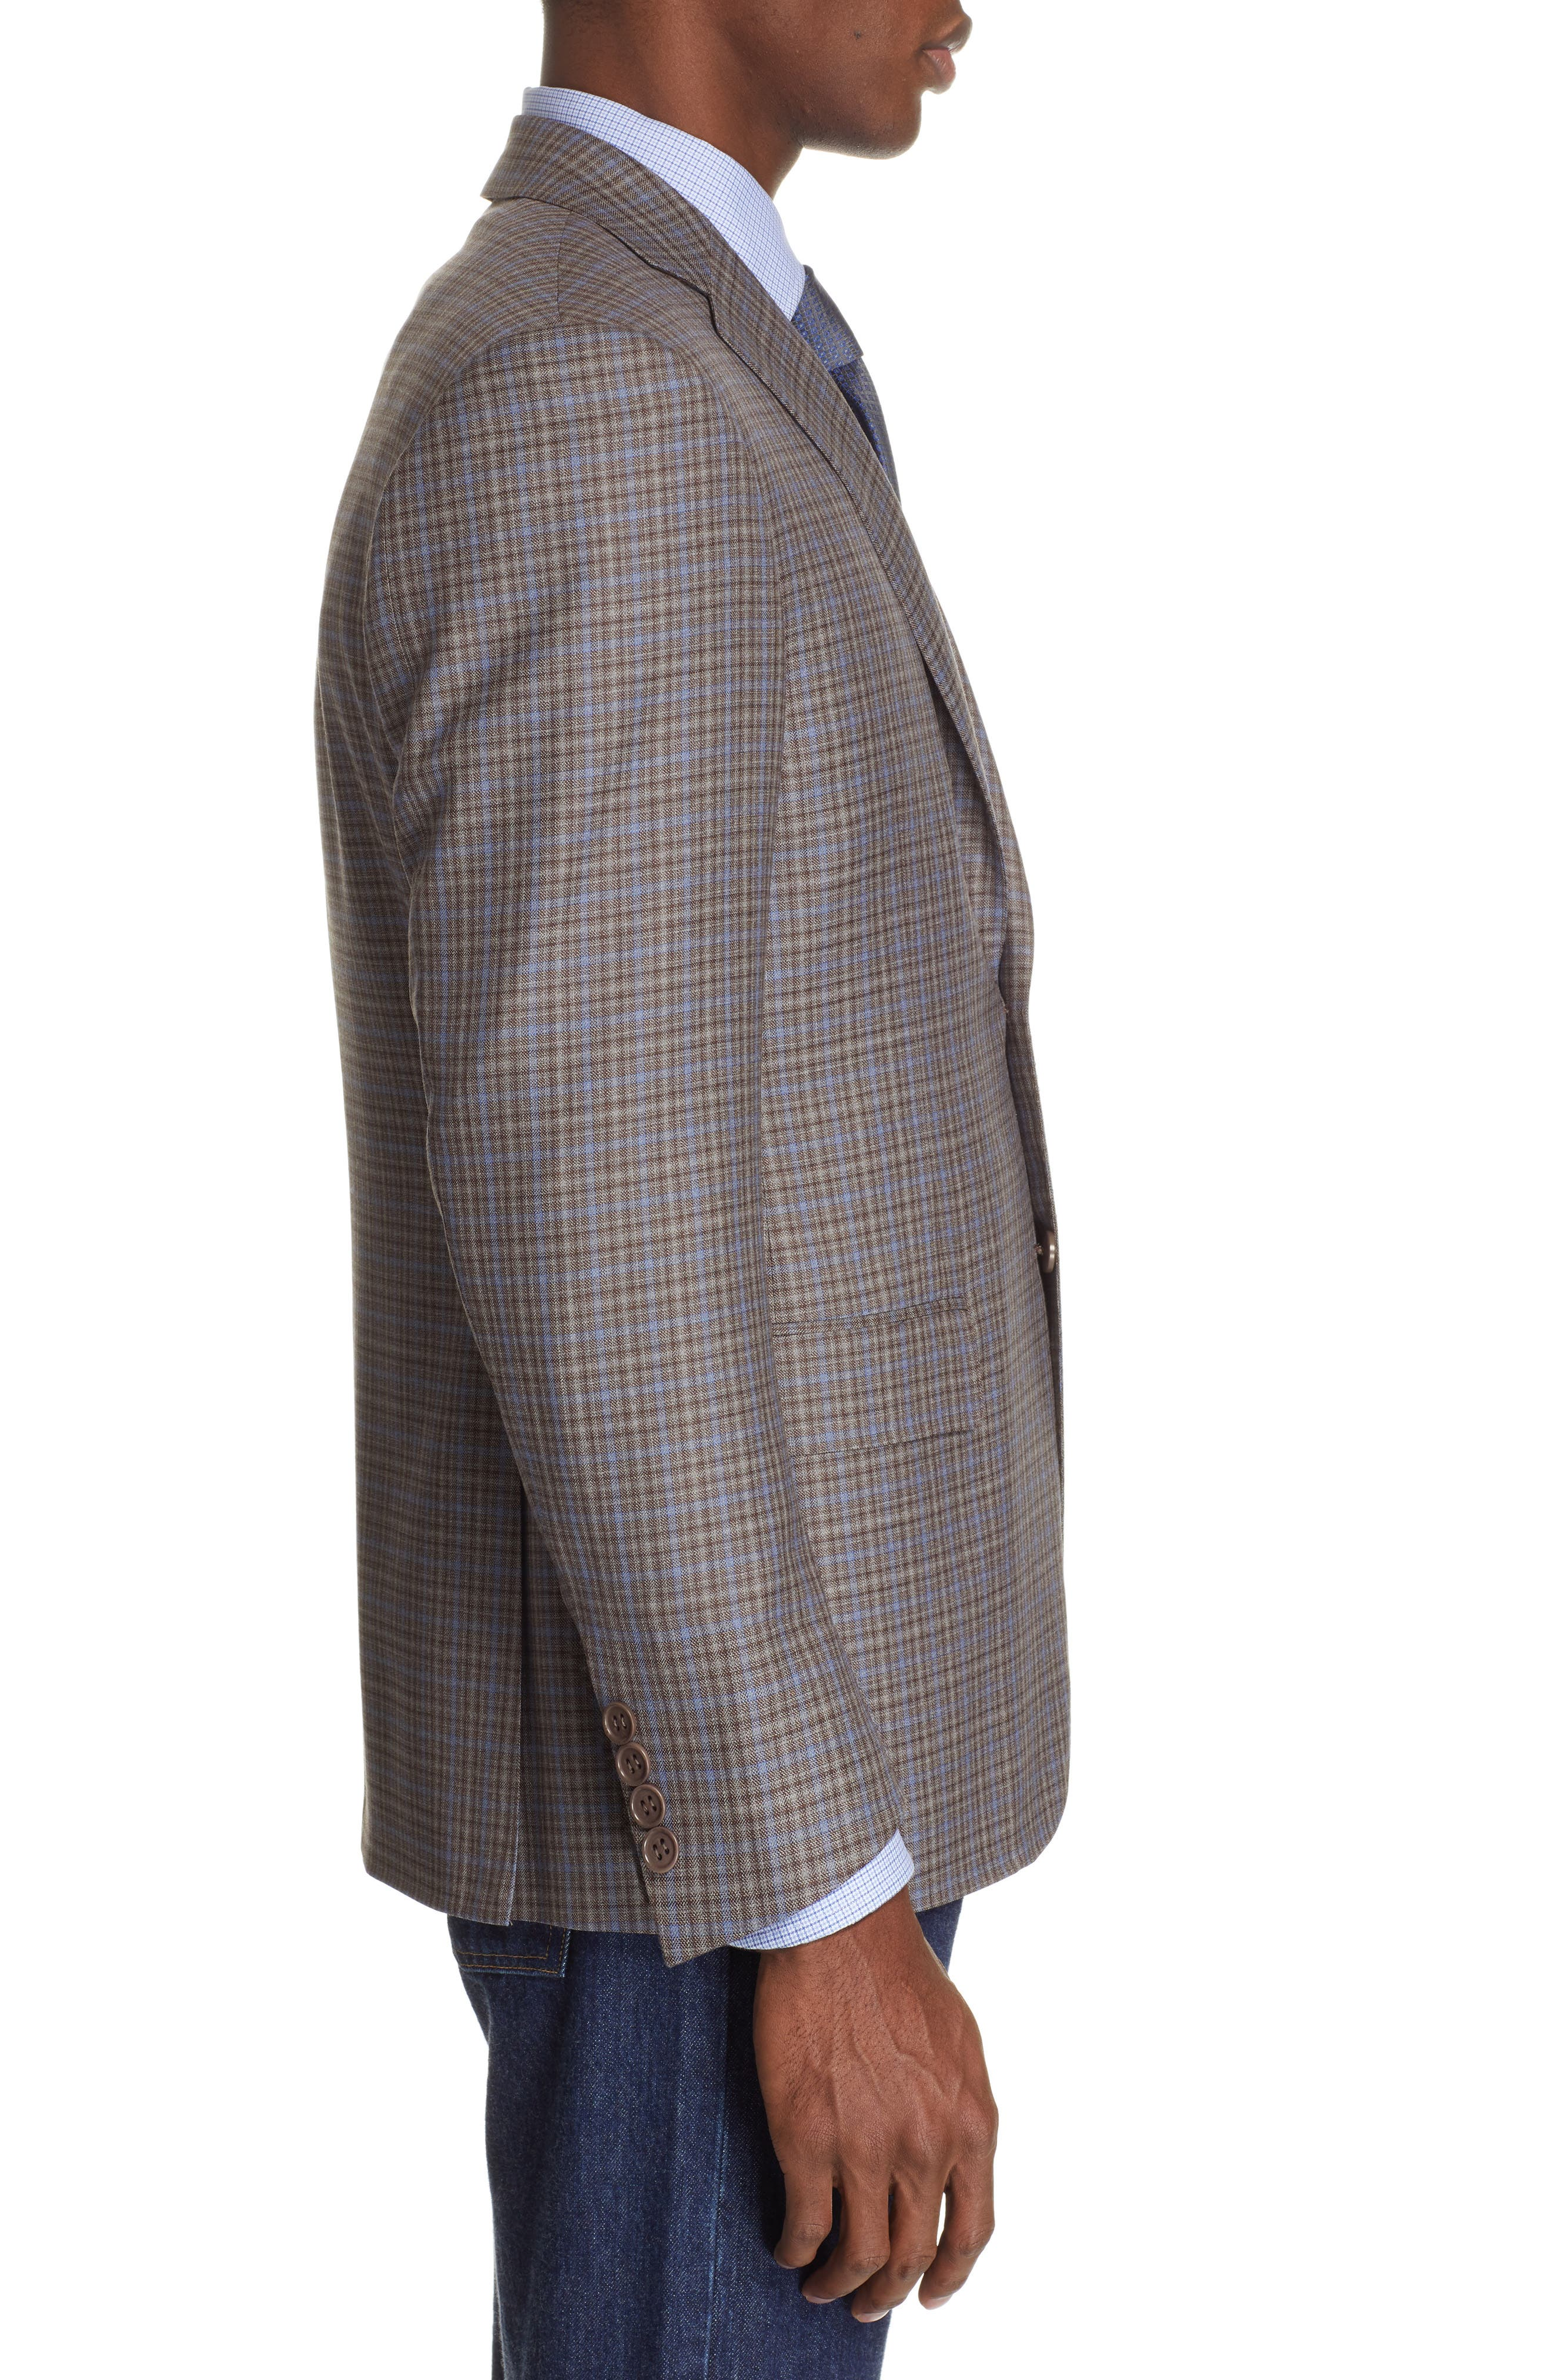 CANALI, Sienna Classic Fit Plaid Wool Sport Coat, Alternate thumbnail 3, color, BROWN